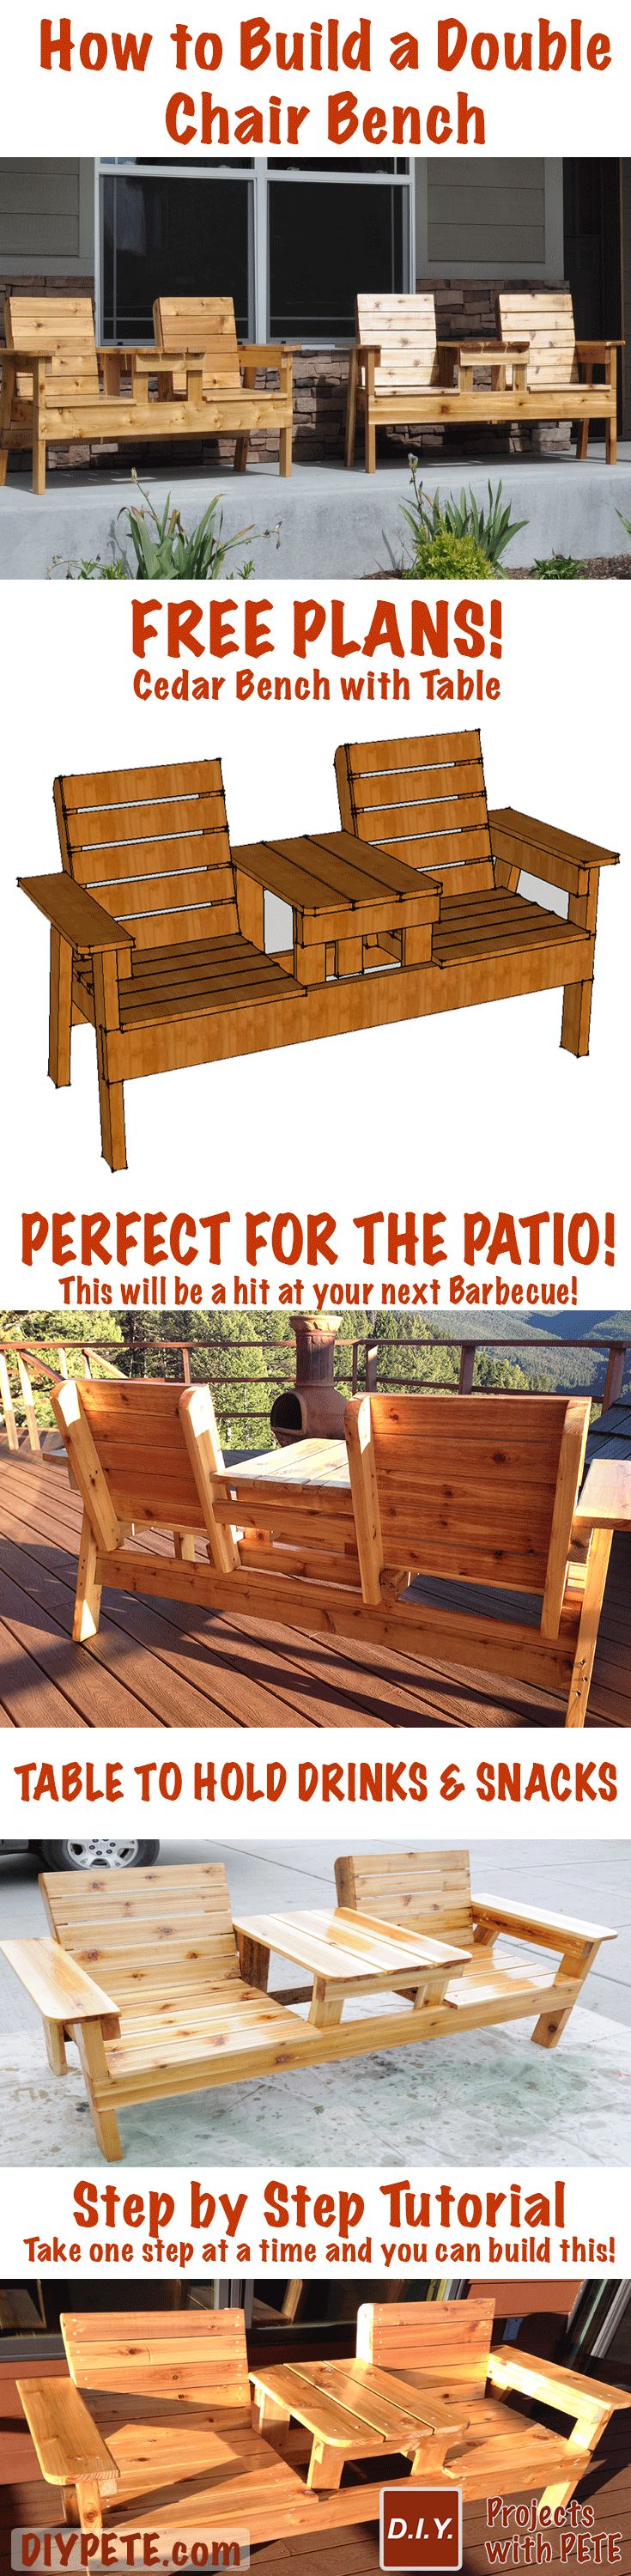 Build your own Double Bench Chair with FREE plans and a 15 minute video tutorial that breaks this proj